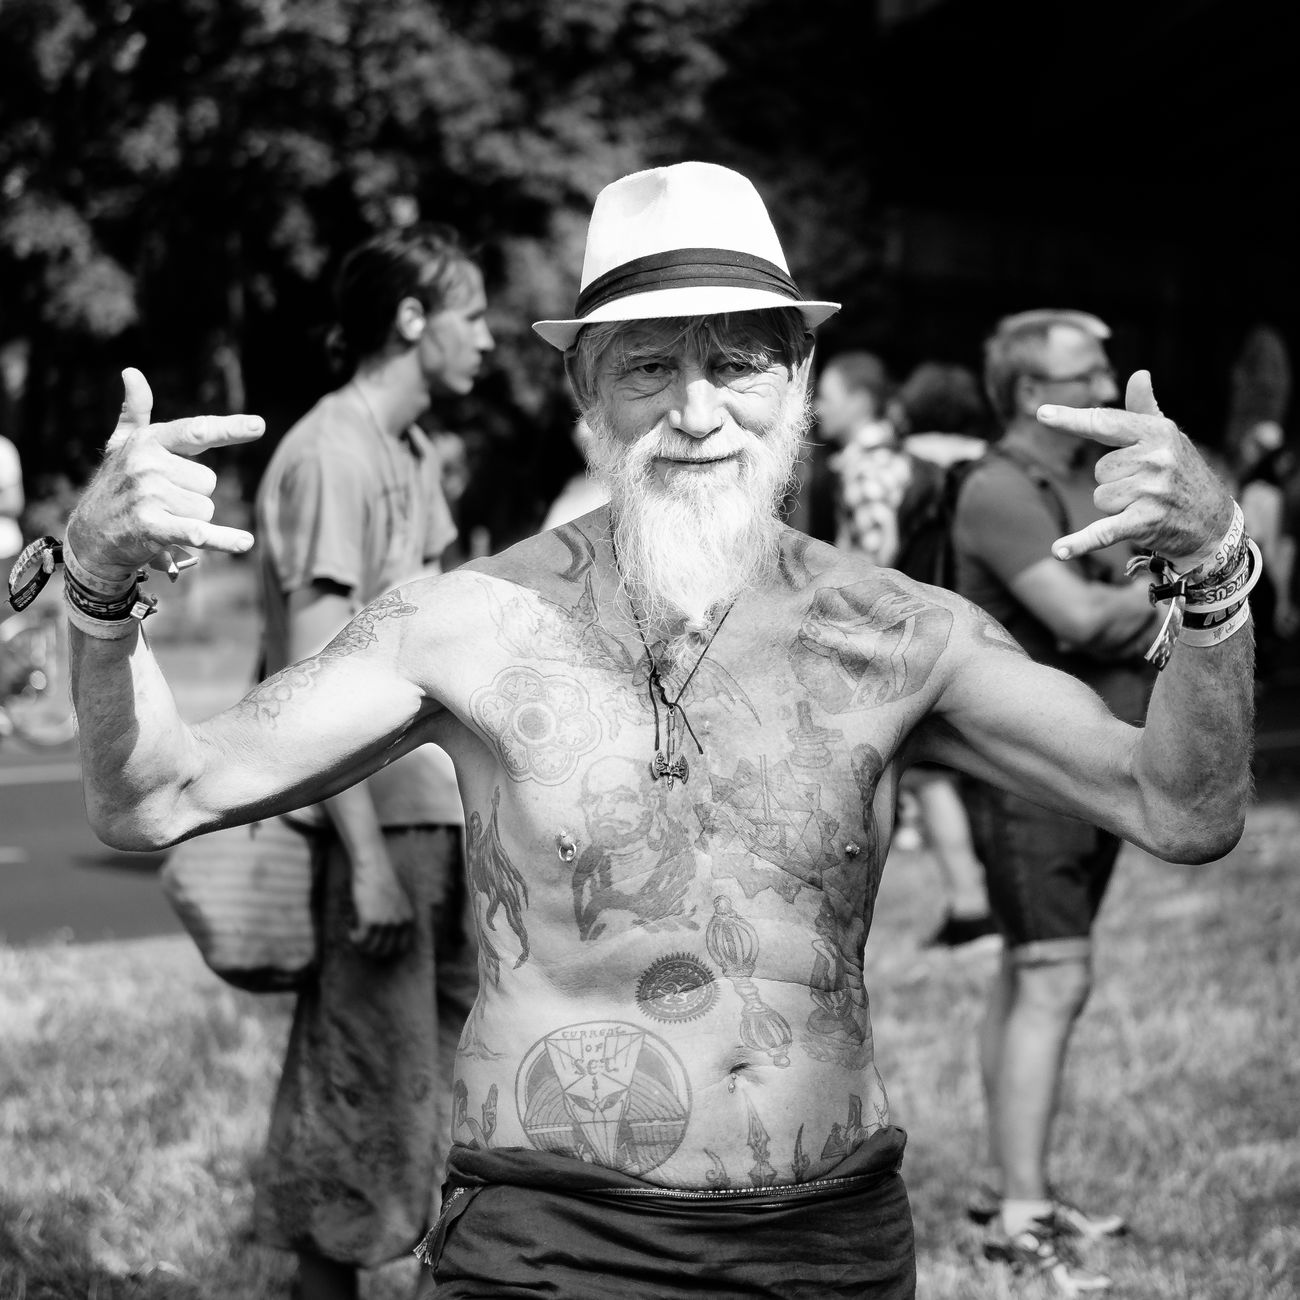 Portrait of 'Gandalf', taken at the 'Zug der Liebe' in Berlin. Battle Of The Cities Beard Black And White Blackandwhite Bw Cool Happiness Hat Old Old Man People People Photography Person Portrait Portrait Photography Street Street Photography Street Portrait Streetphoto_bw Streetphotography Tattoo Tattooed Tattoomodels Tattoos Zug Der Liebe